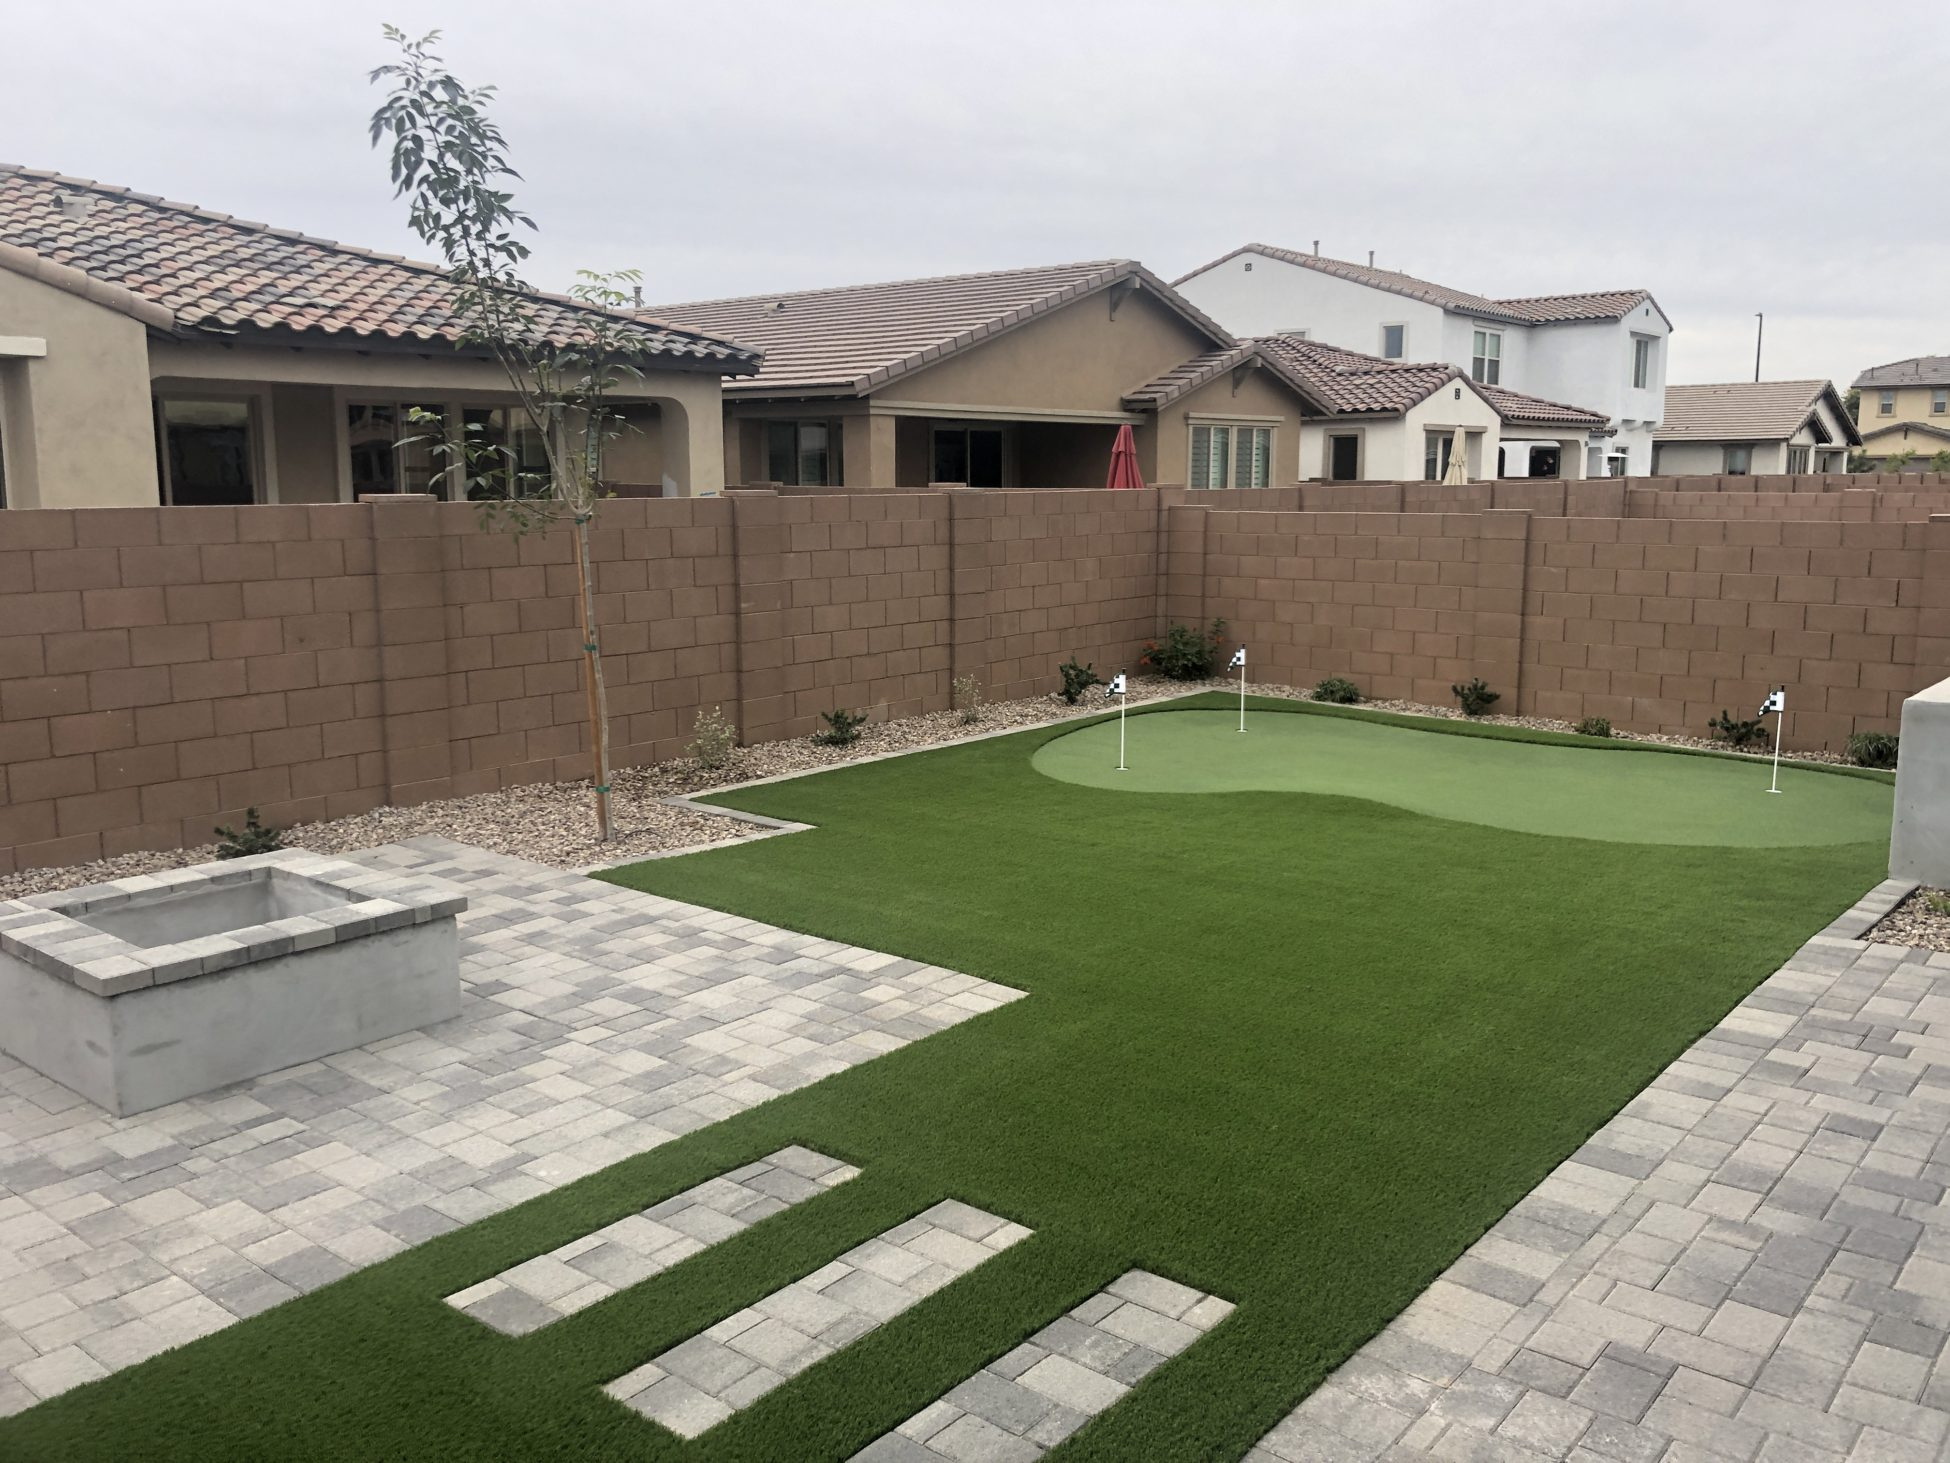 Check It Out Outdoor Putting Green In Arizona Backyard Landscape inside 12 Some of the Coolest Designs of How to Improve Backyard Landscaping Arizona